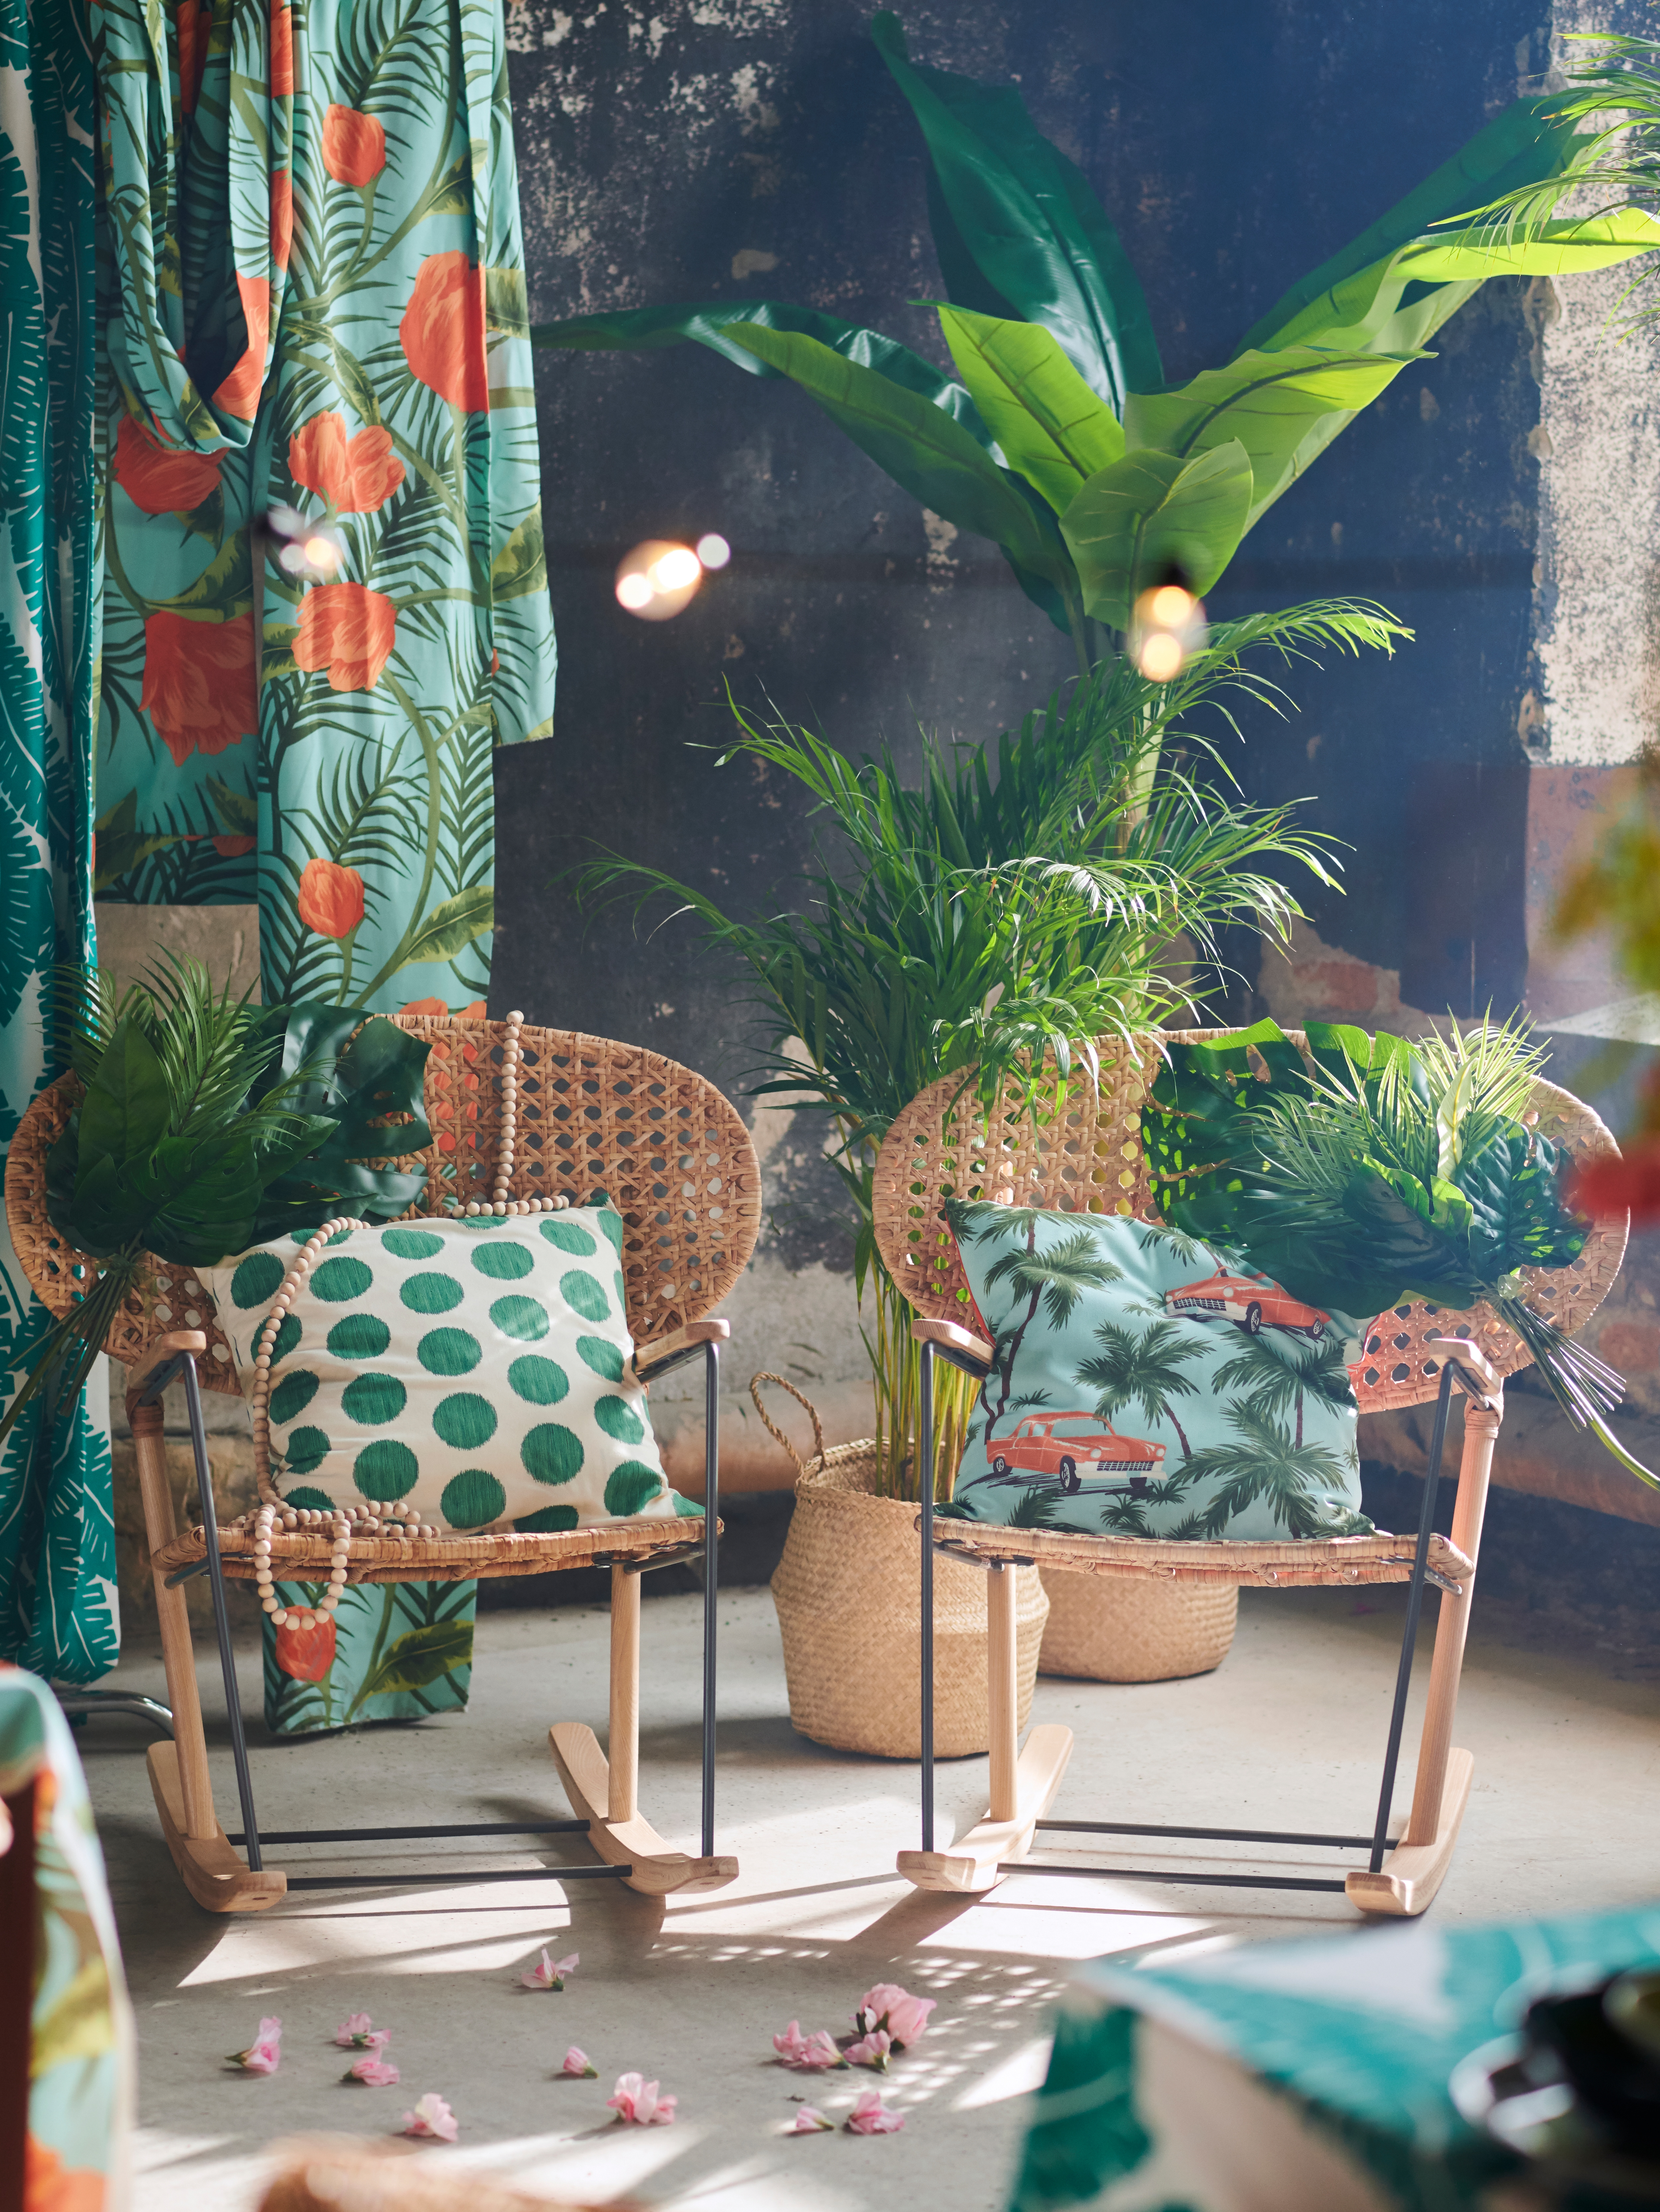 Two GRÖNADAL rocking chairs decorated with ÅSATILDA and SOMMAR 2020 cushions, surrounded by plants and SOMMAR 2020 fabric.